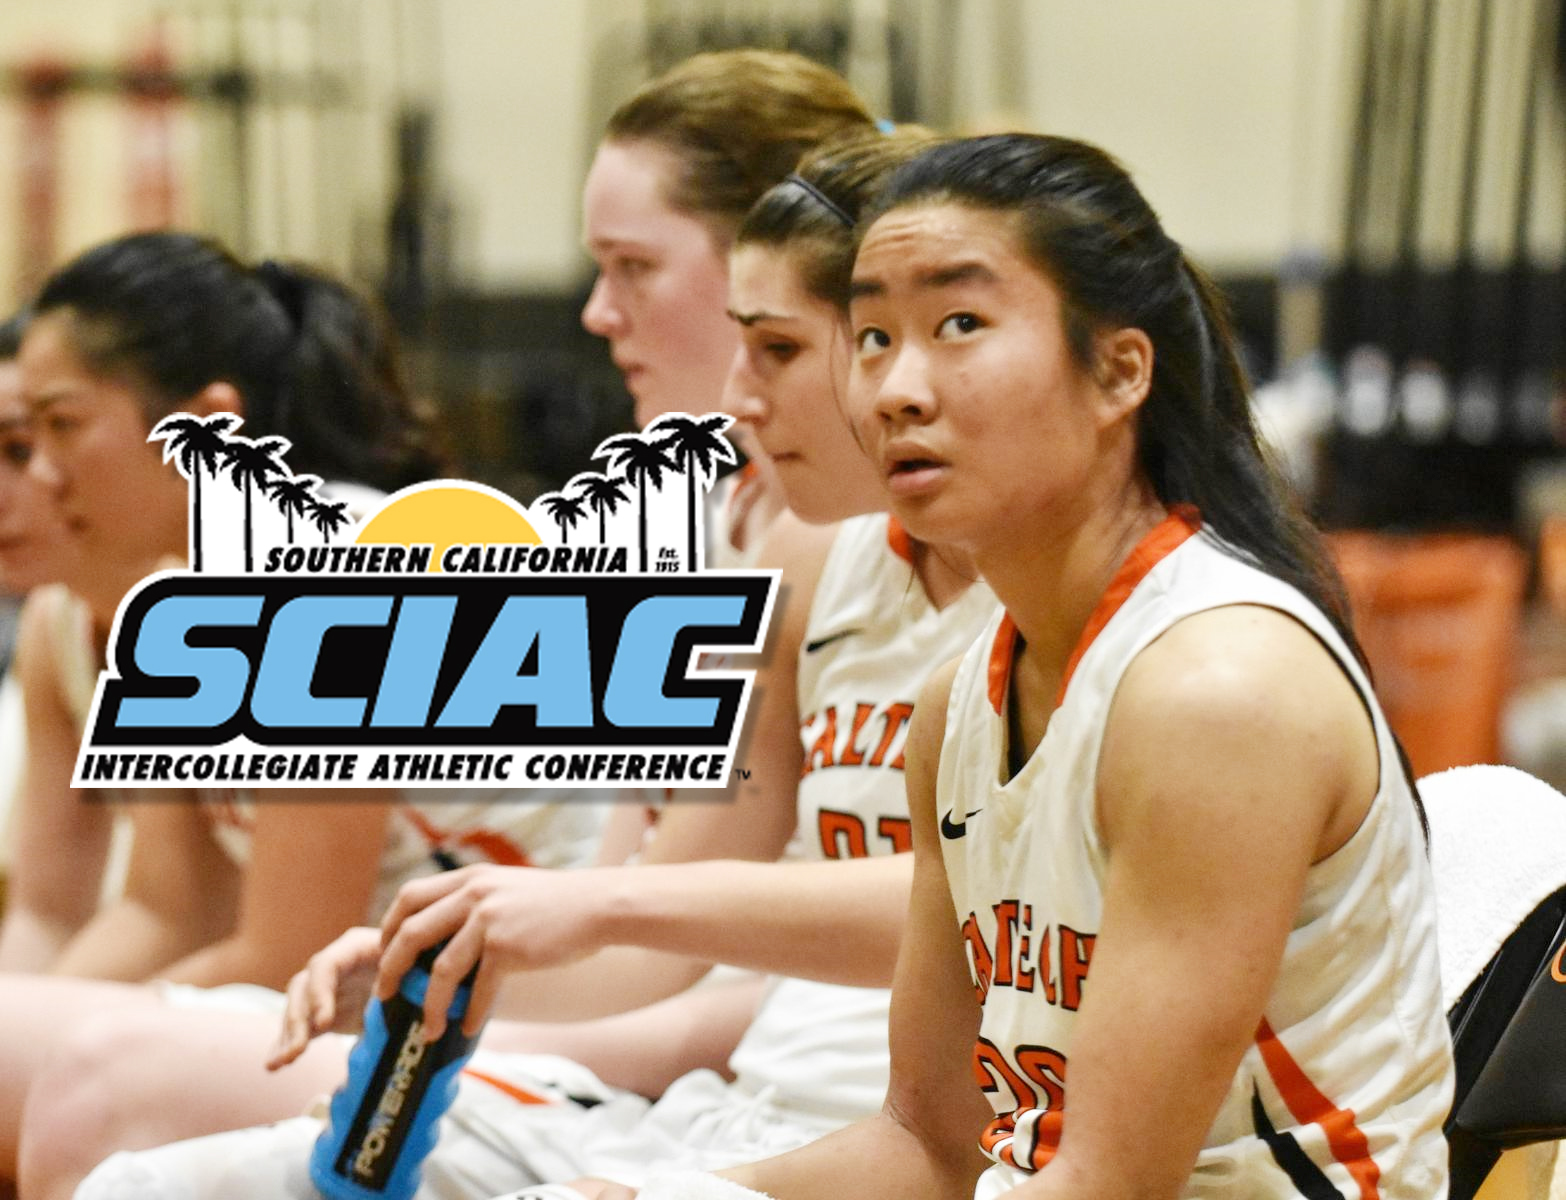 Peng Named to Second Team All-SCIAC